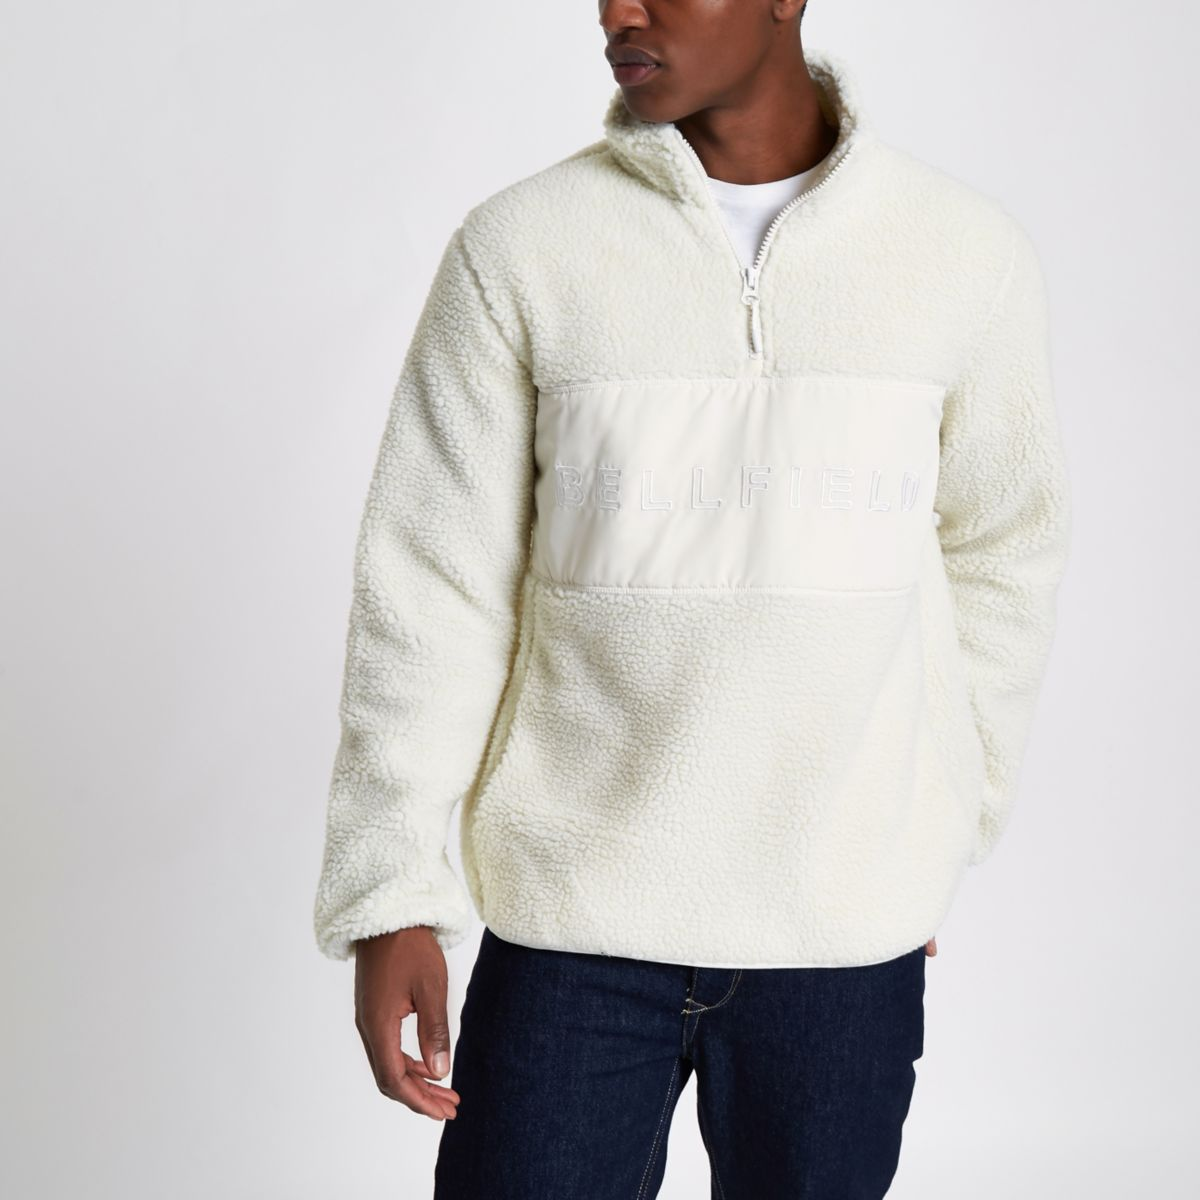 Bellfield cream pullover fleece jacket